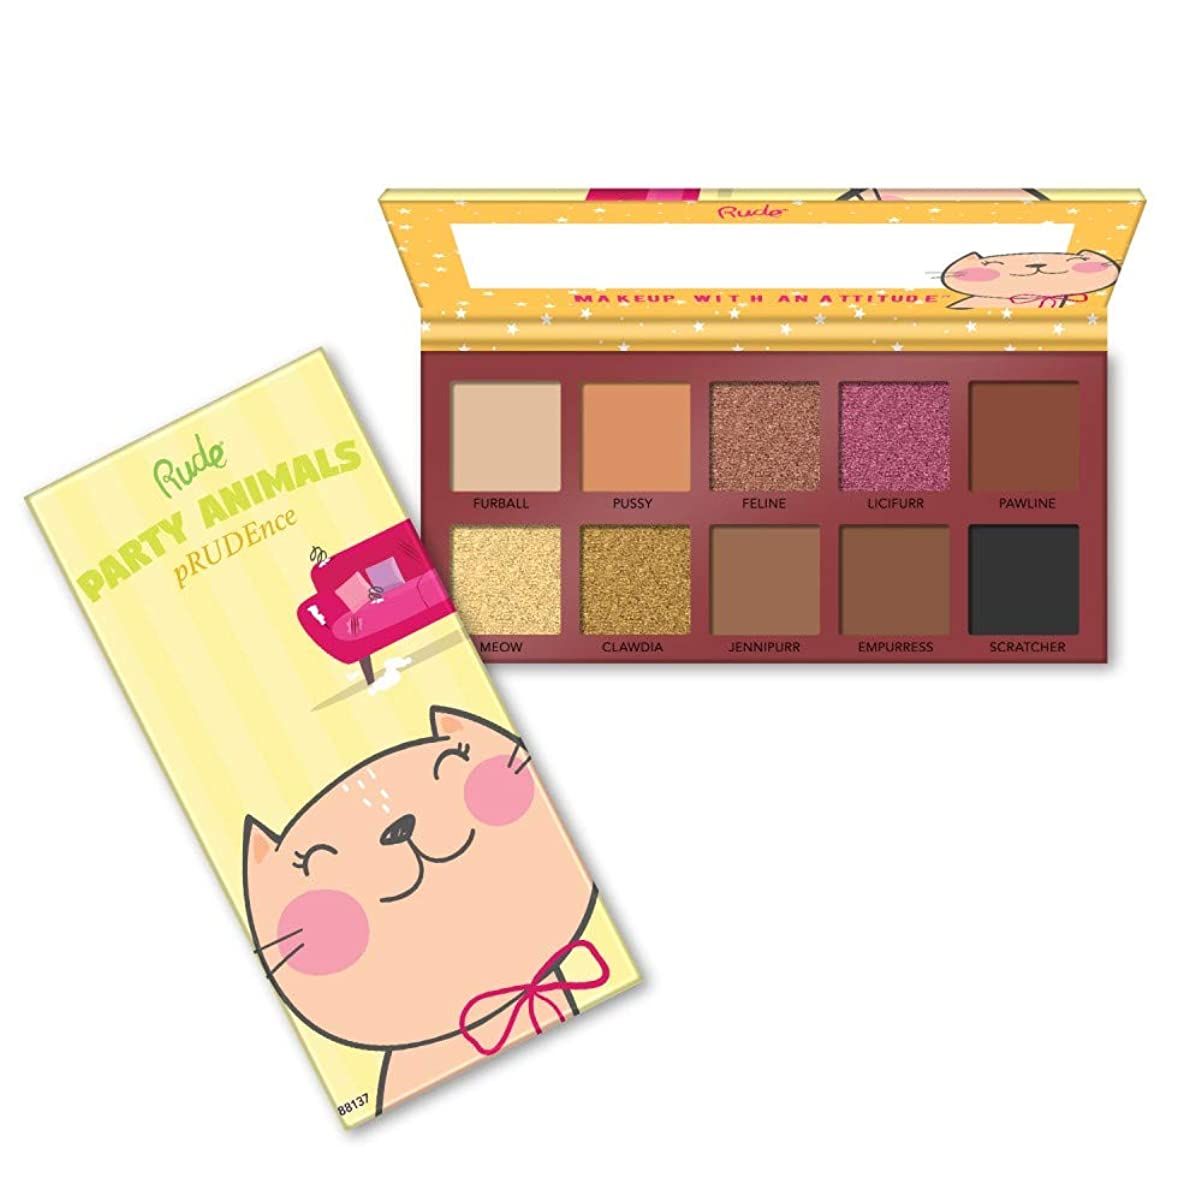 甲虫不足カバレッジRUDE? Party Animals 10 Eyeshadow Palette - pRUDEnce (並行輸入品)